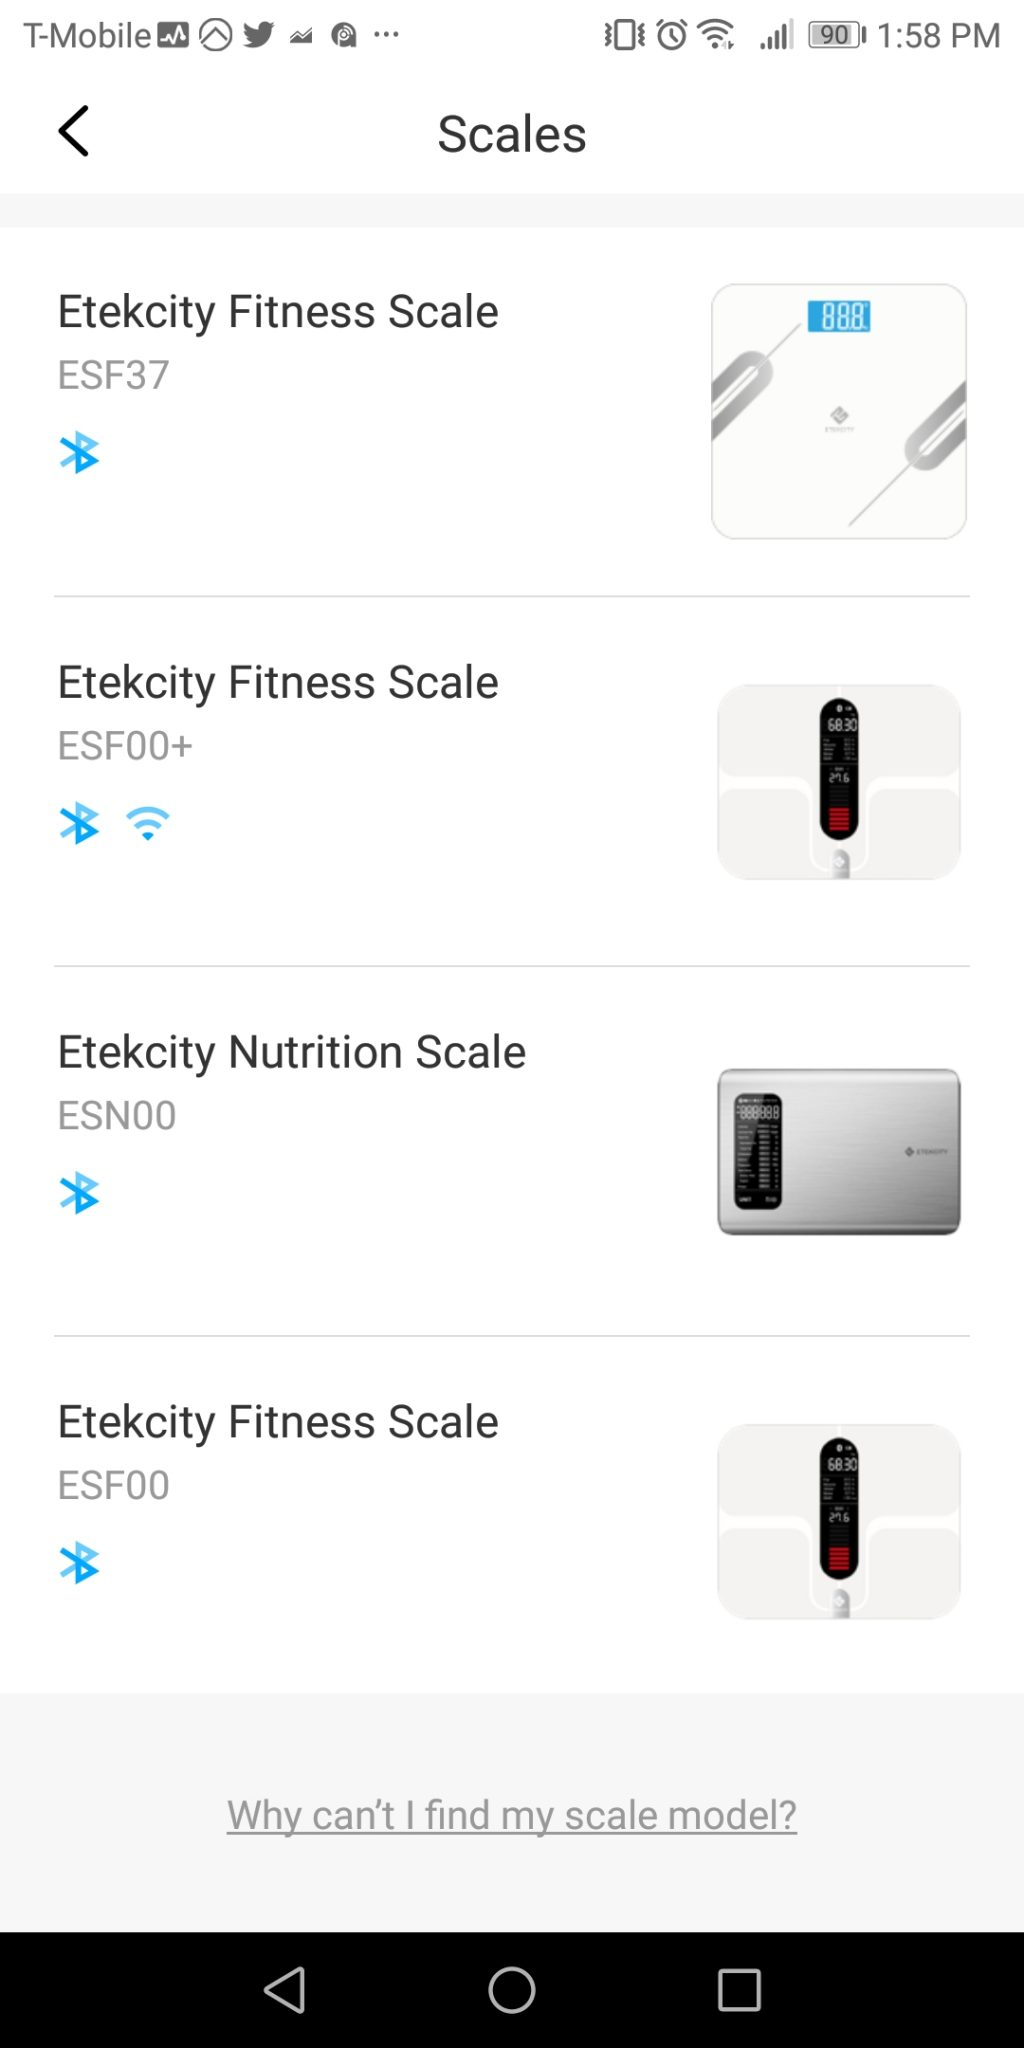 Etekcity WiFi Smart Scale - Image 4